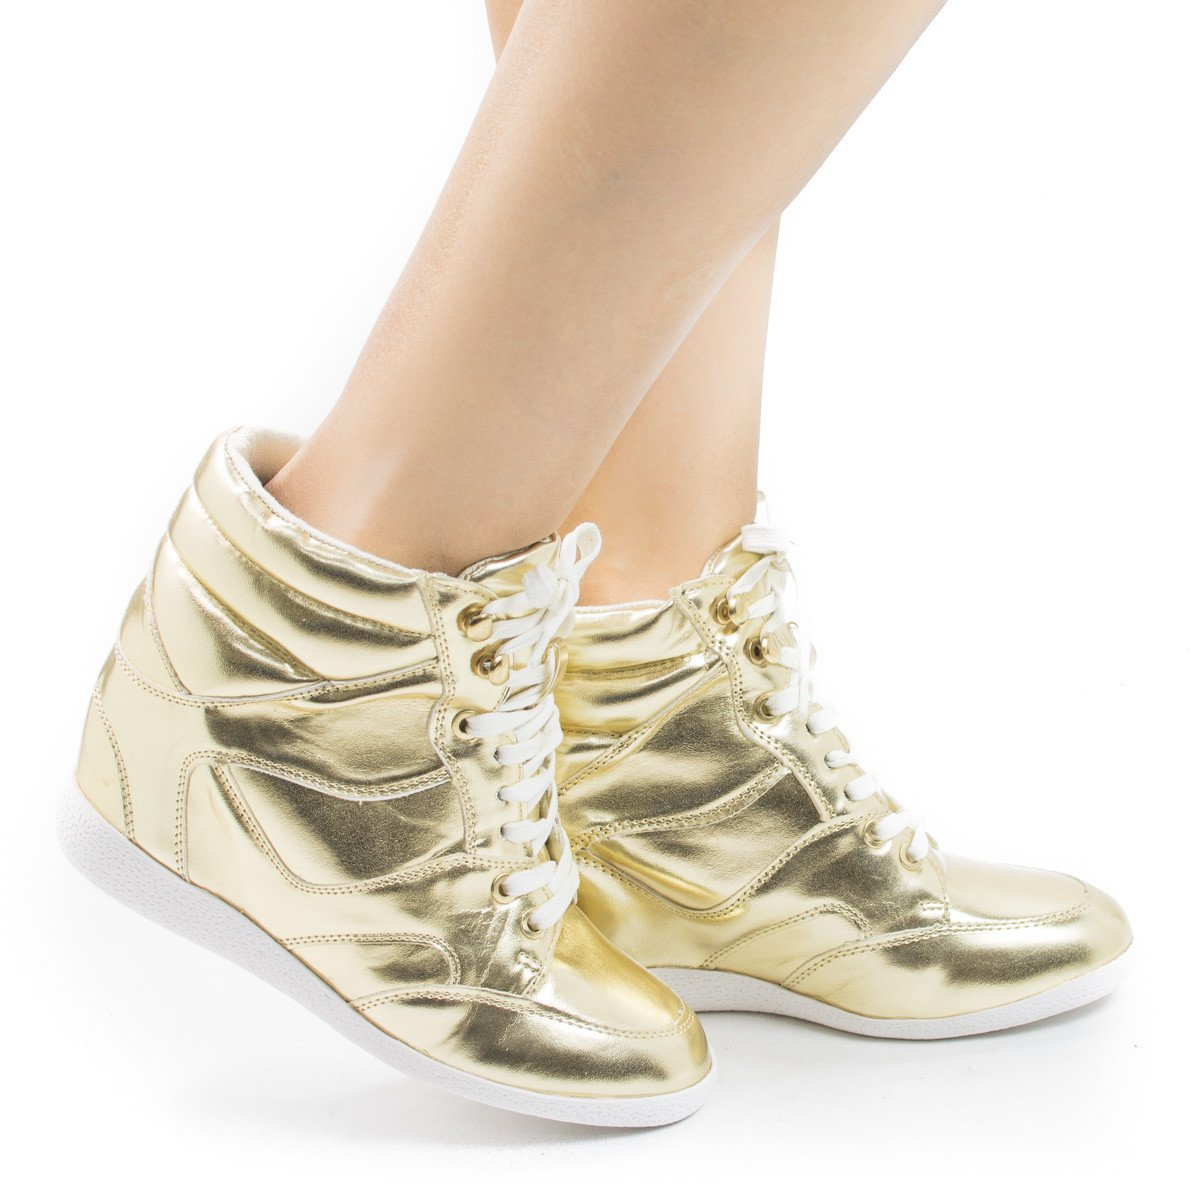 Bethany17 by Bamboo, Lace up Hidden High Wedge Women's Fashion Sneakers